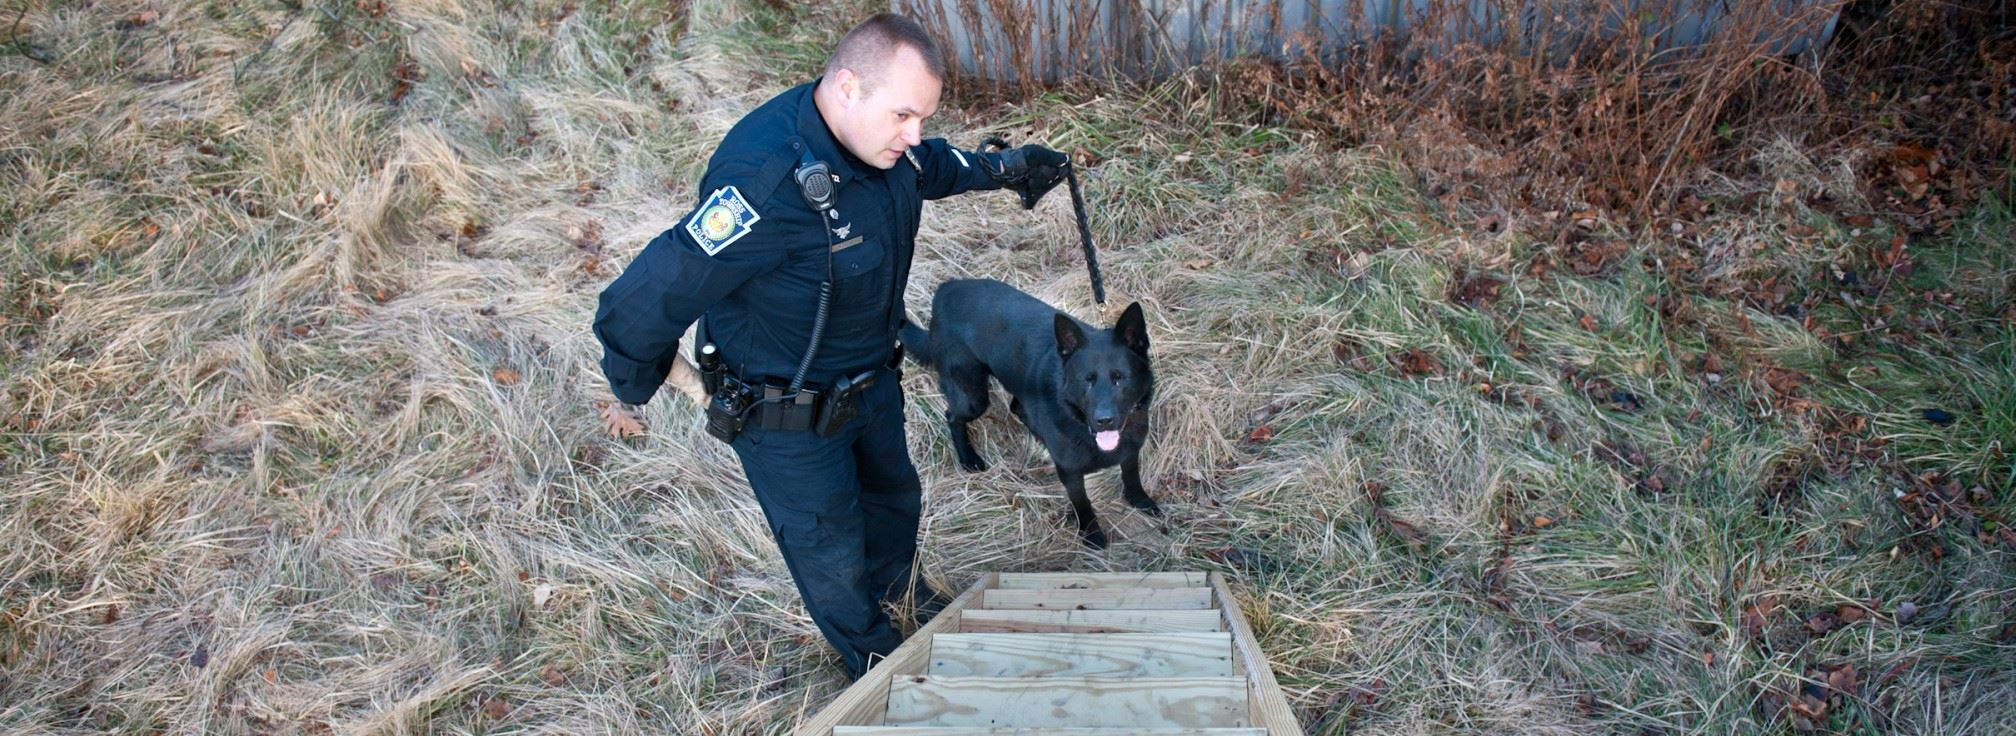 K-9 doing obstical course